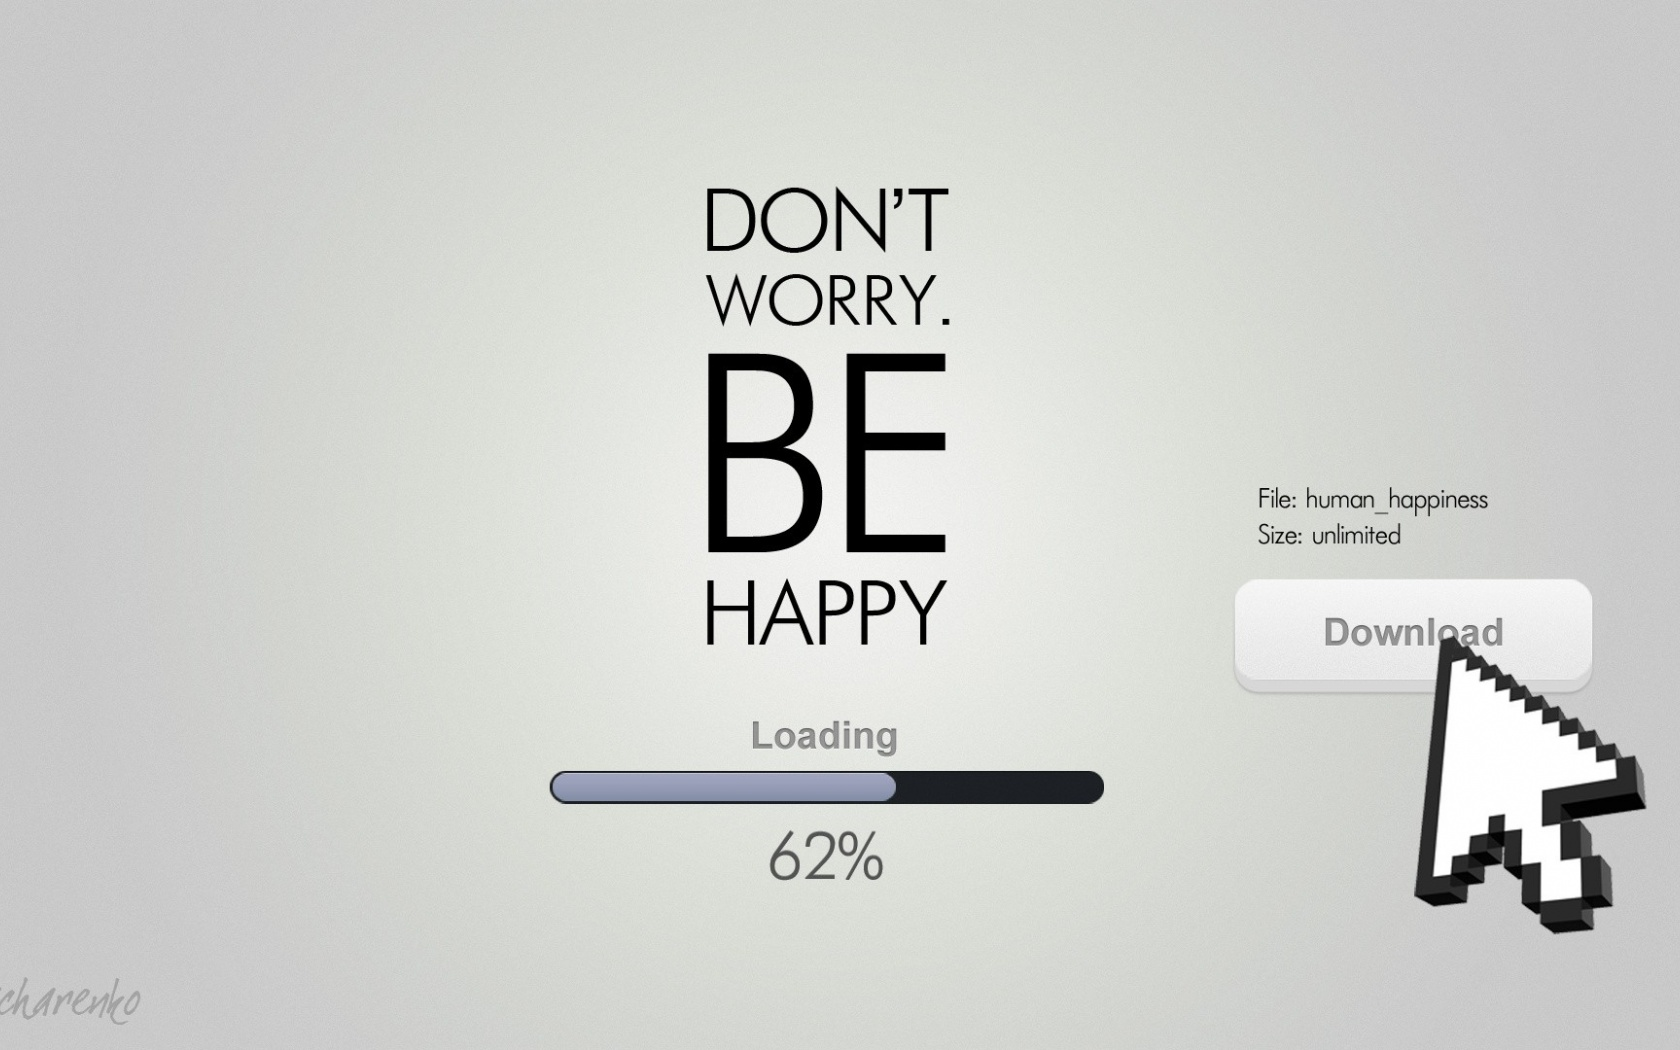 1680x1050 Don't worry be happy desktop PC and Mac wallpaper